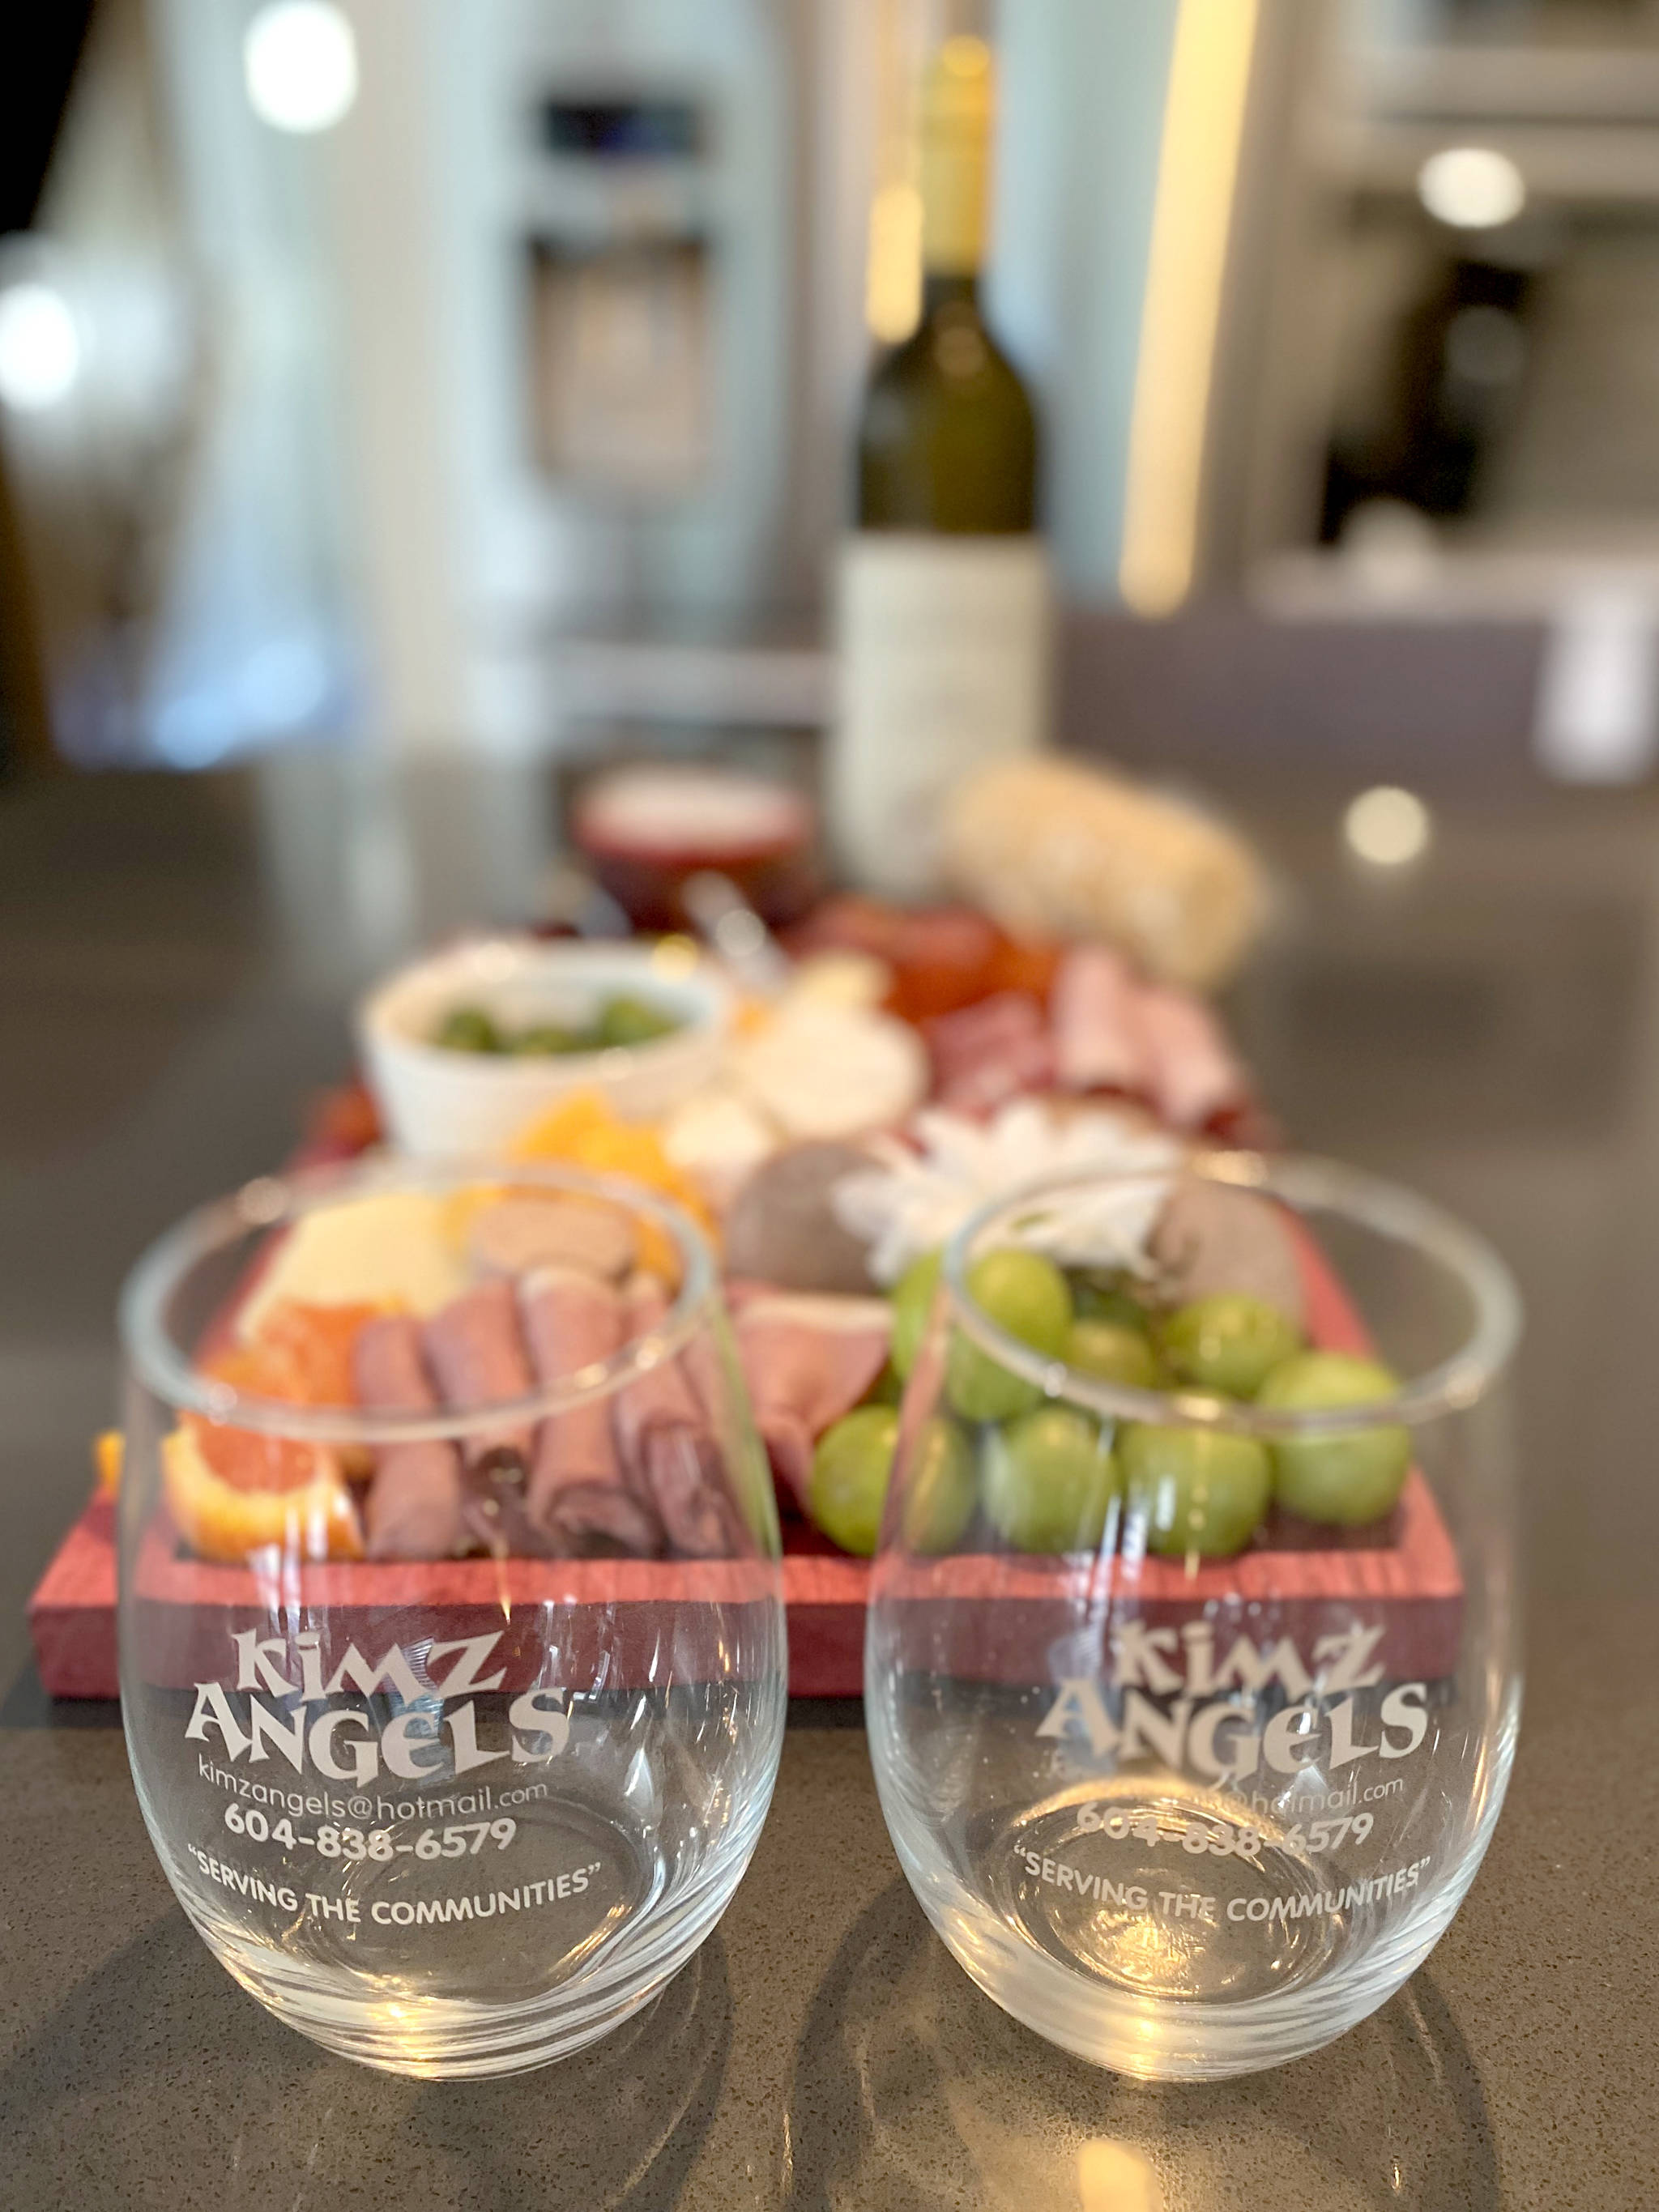 """On April 17, 2021, people who purchased tickets to the """"Angels Working Together"""" virtual gala came together online with a bottle of wine and a Kimz Angels engraved charcuterie board with meats and cheeses, all delivered to their door on the day of the event. (Langley Advance Times)"""